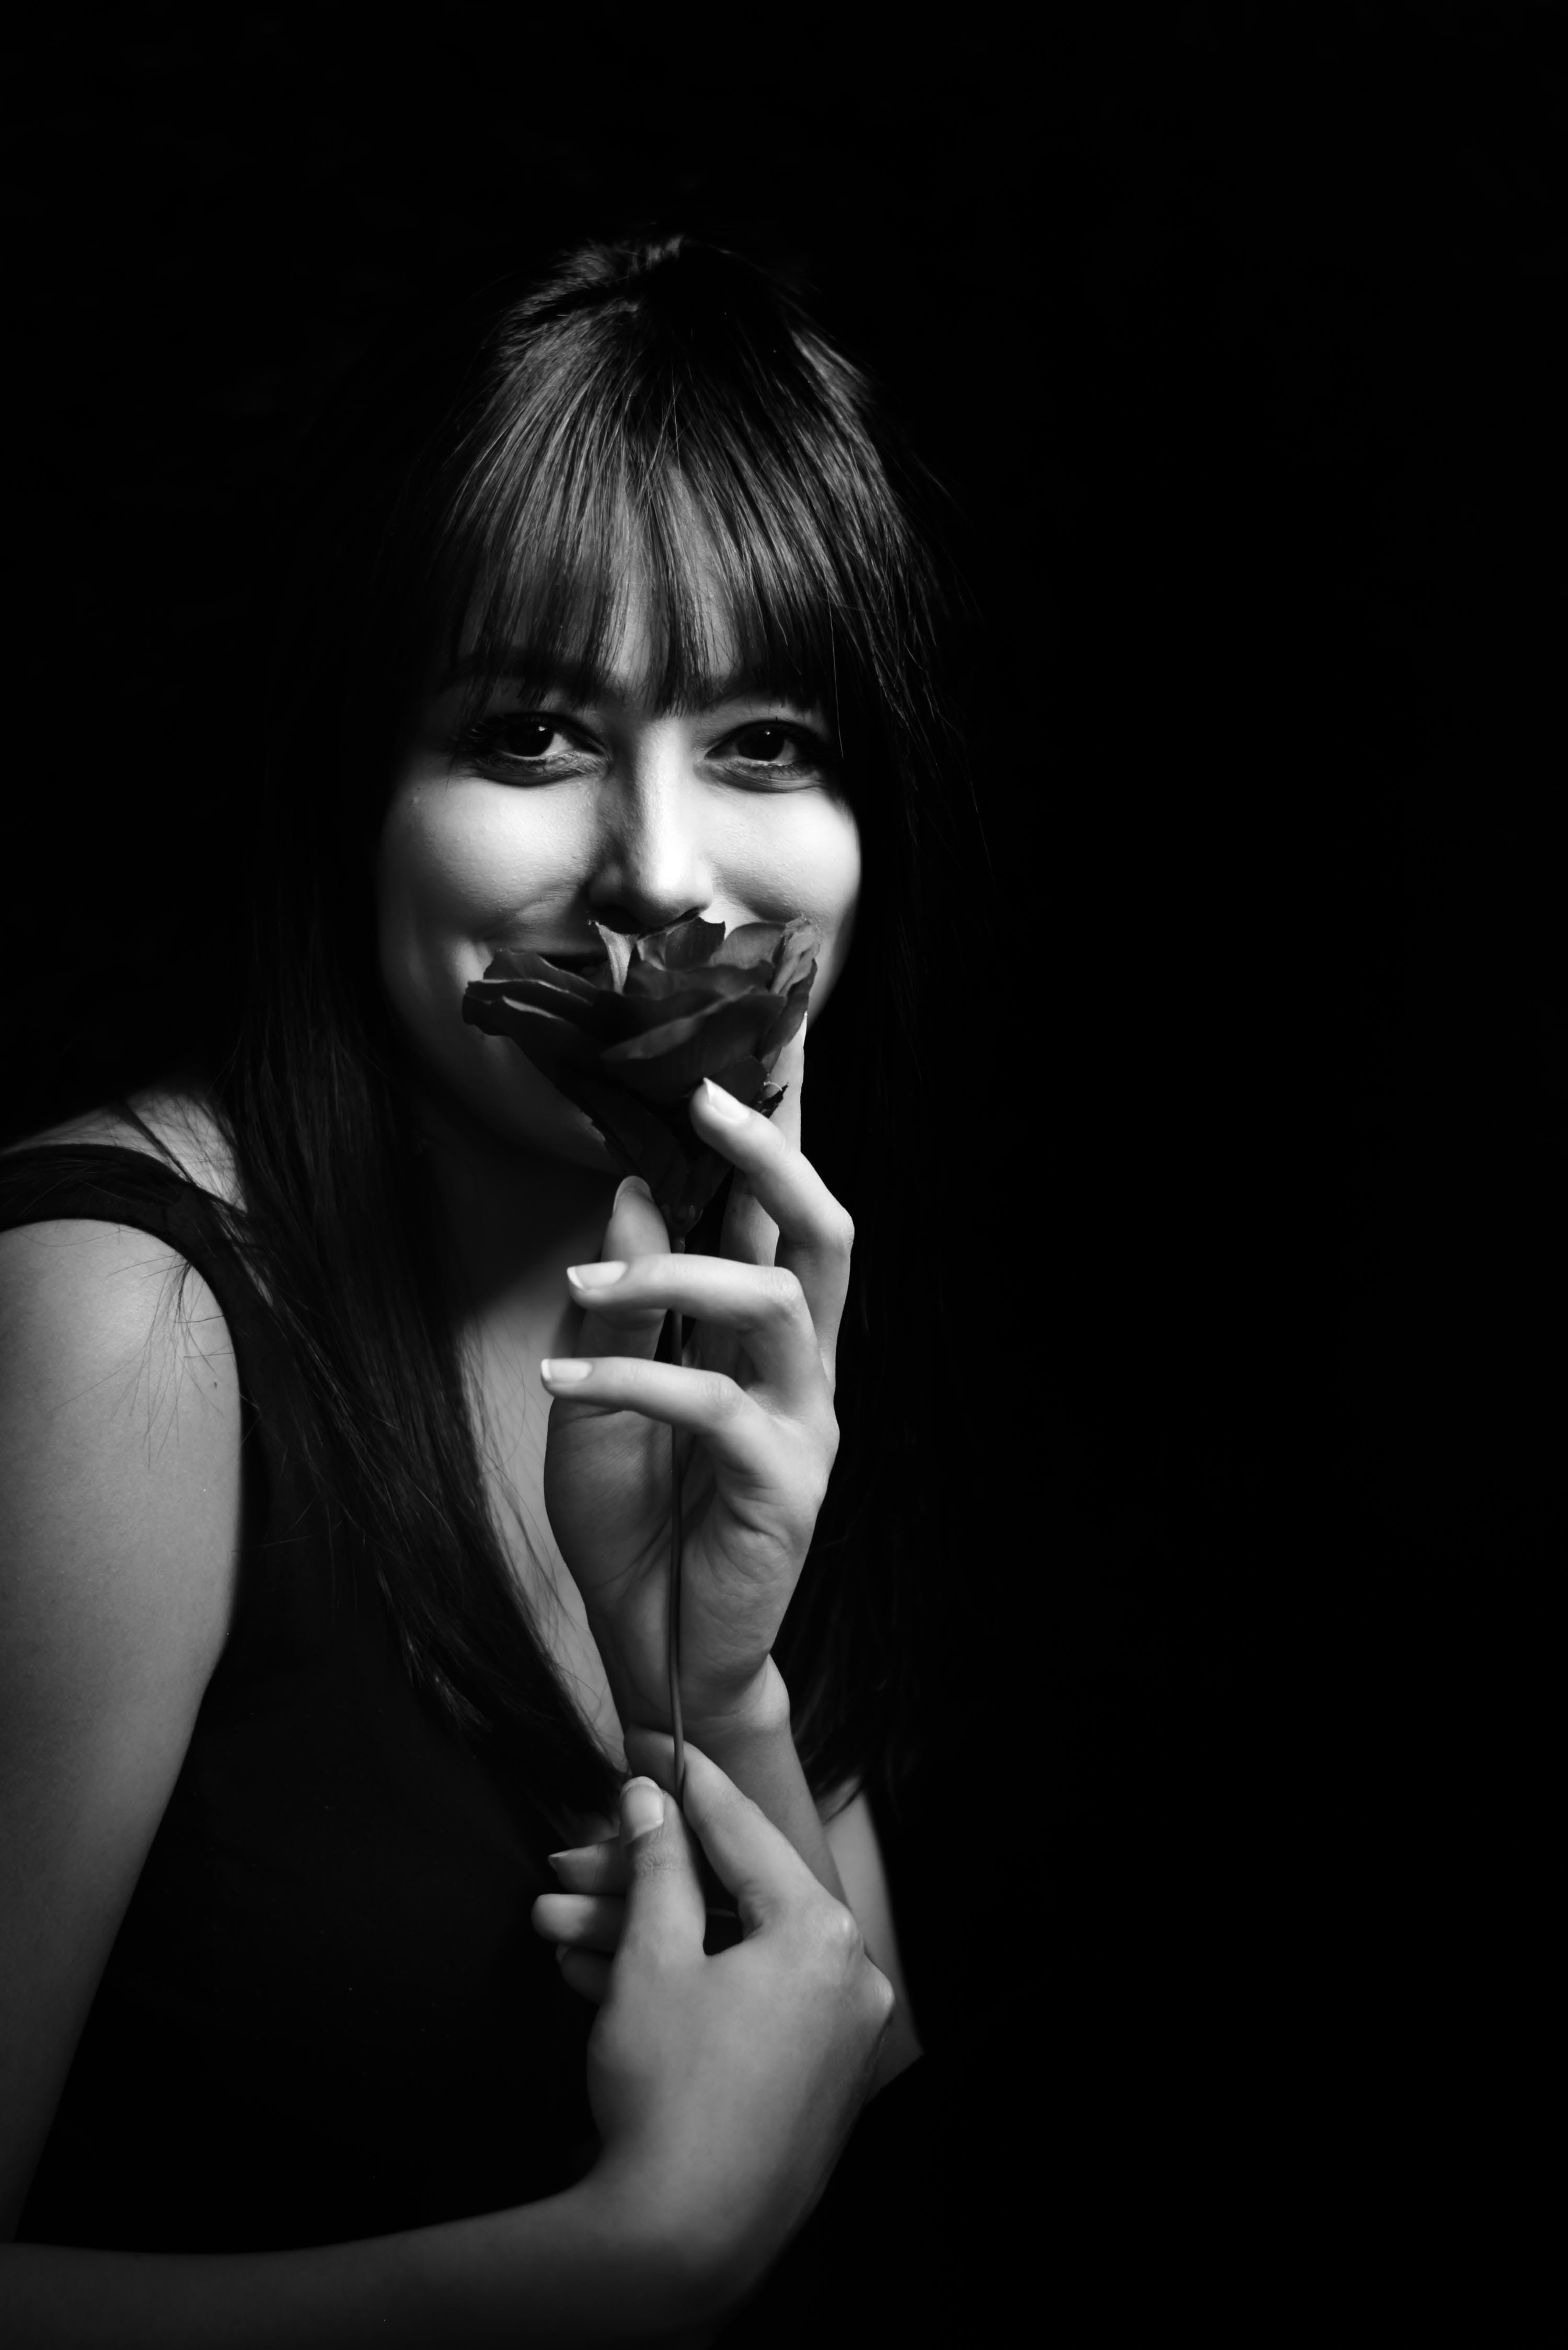 Grayscale Photo of Woman Holding Flower